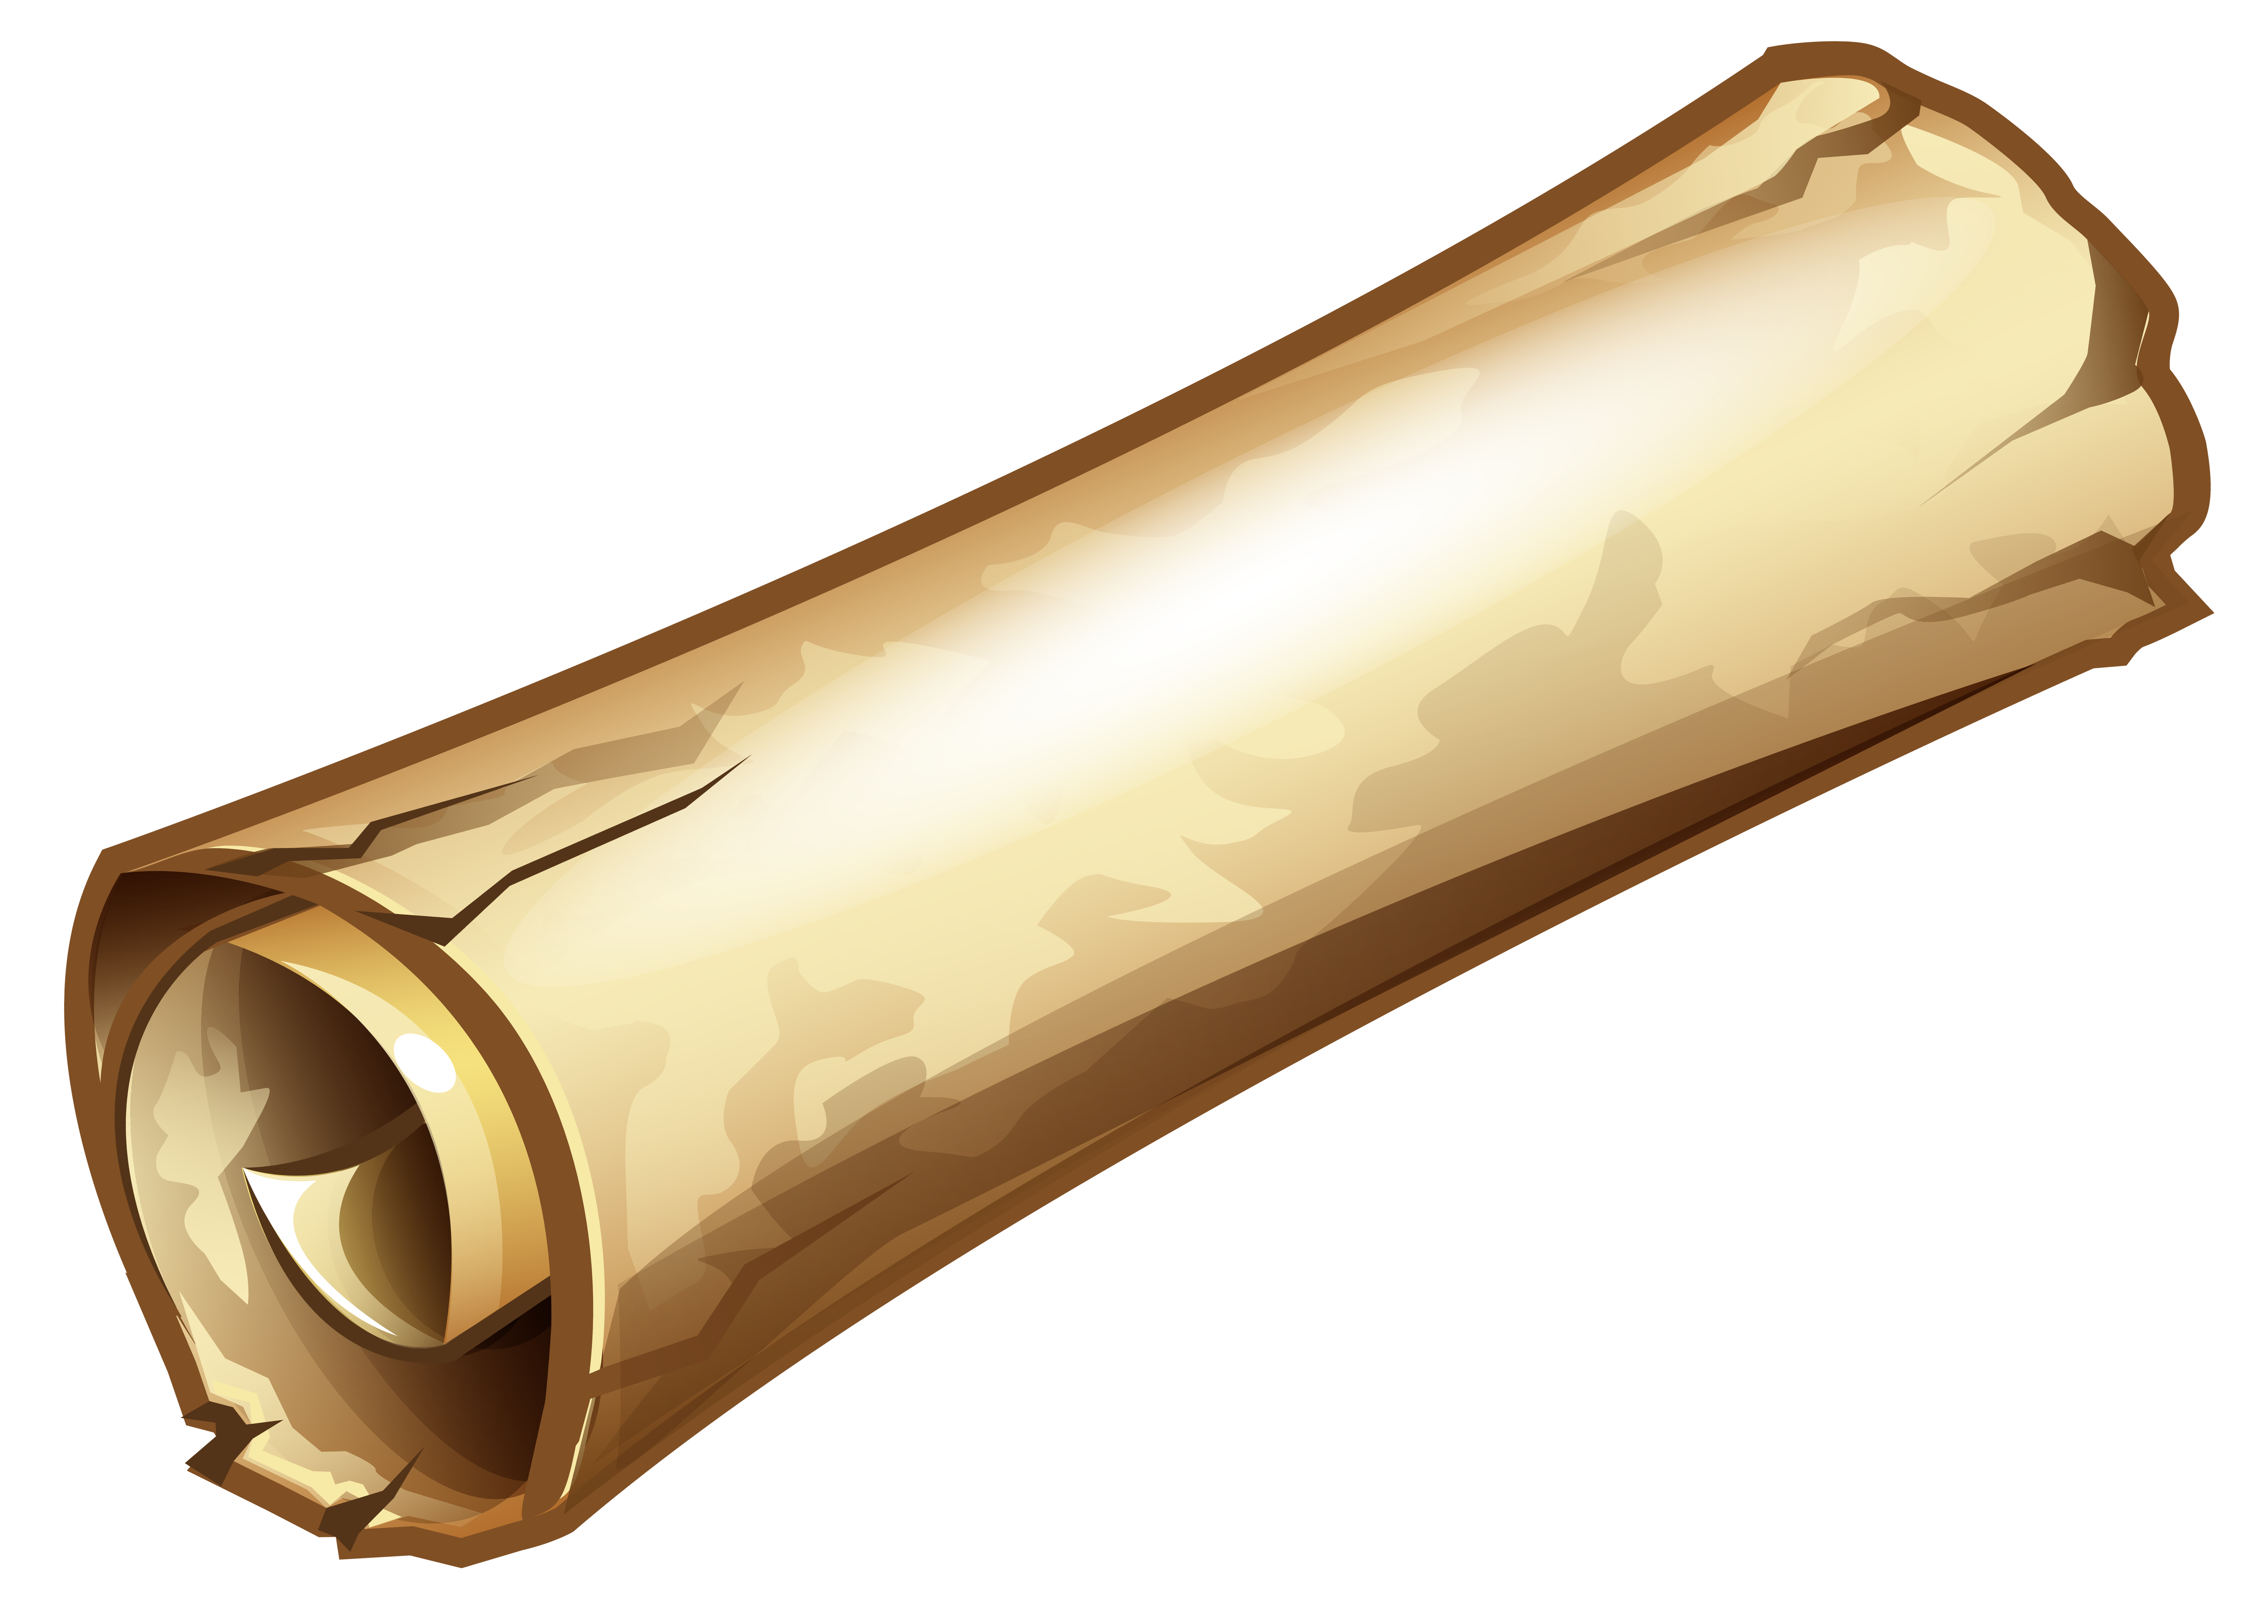 Scrolls pictures clipart clip royalty free Pictures Of Scrolls | Free download best Pictures Of Scrolls ... clip royalty free